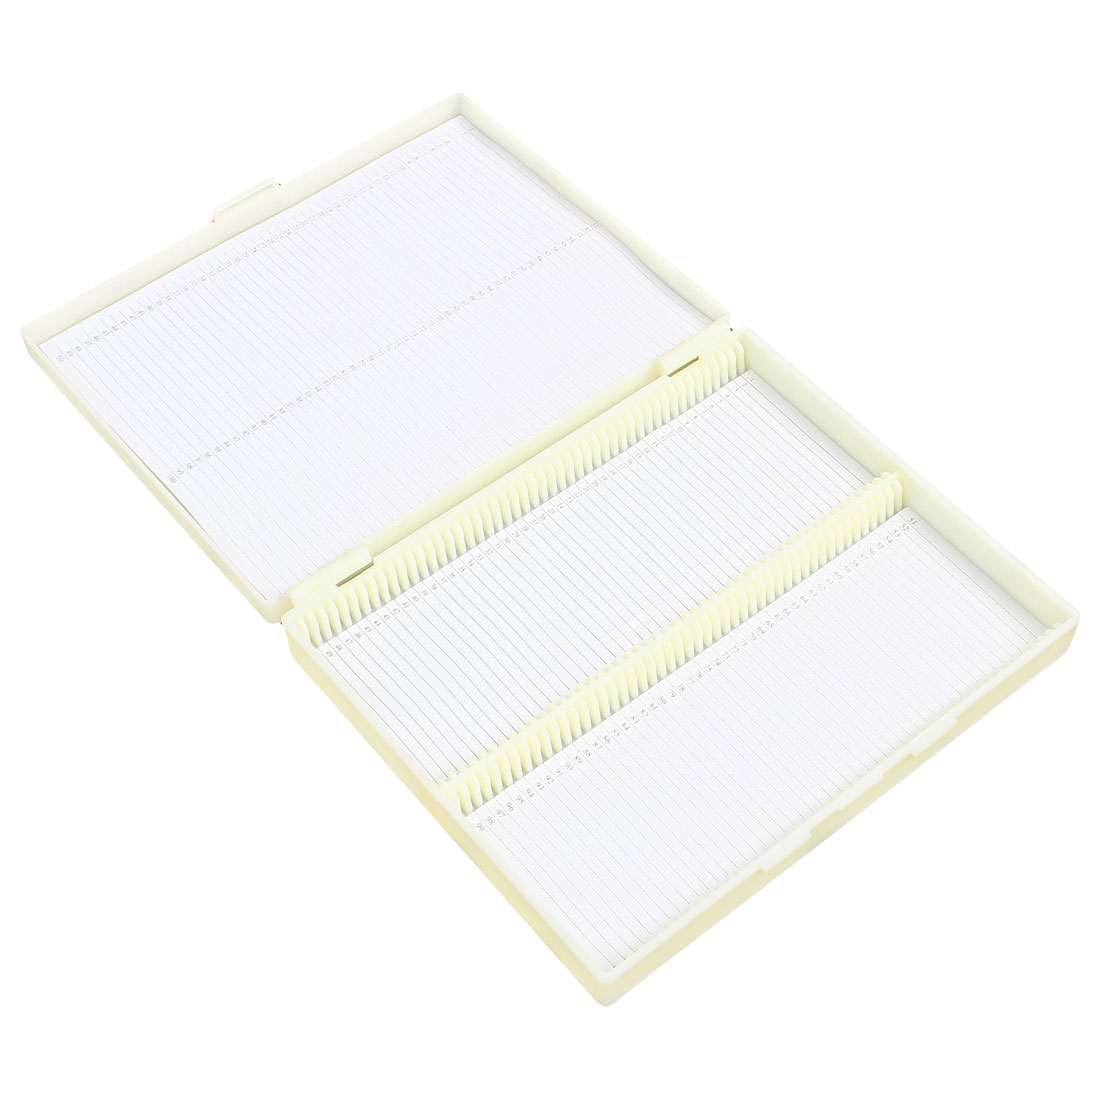 20cm x 16cm Beige Plastic Rectangular 100 Slides Microscope Box